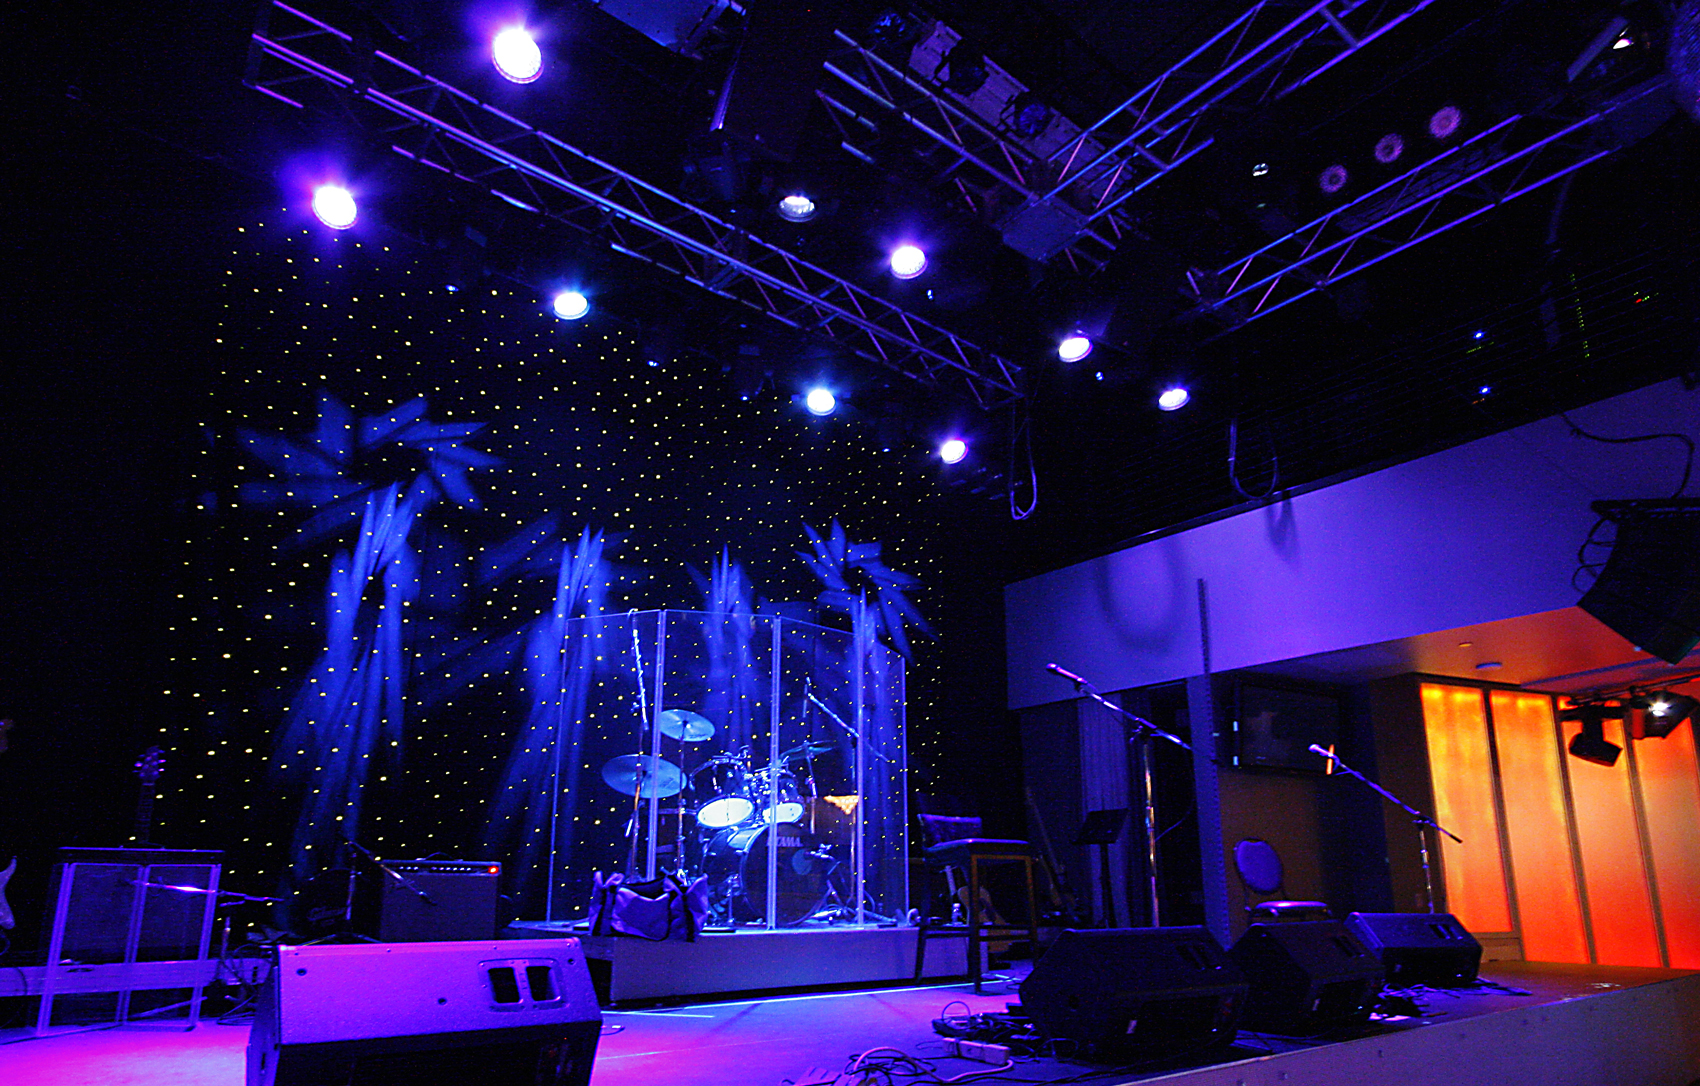 Mount Airy Casino Gypsies Stage